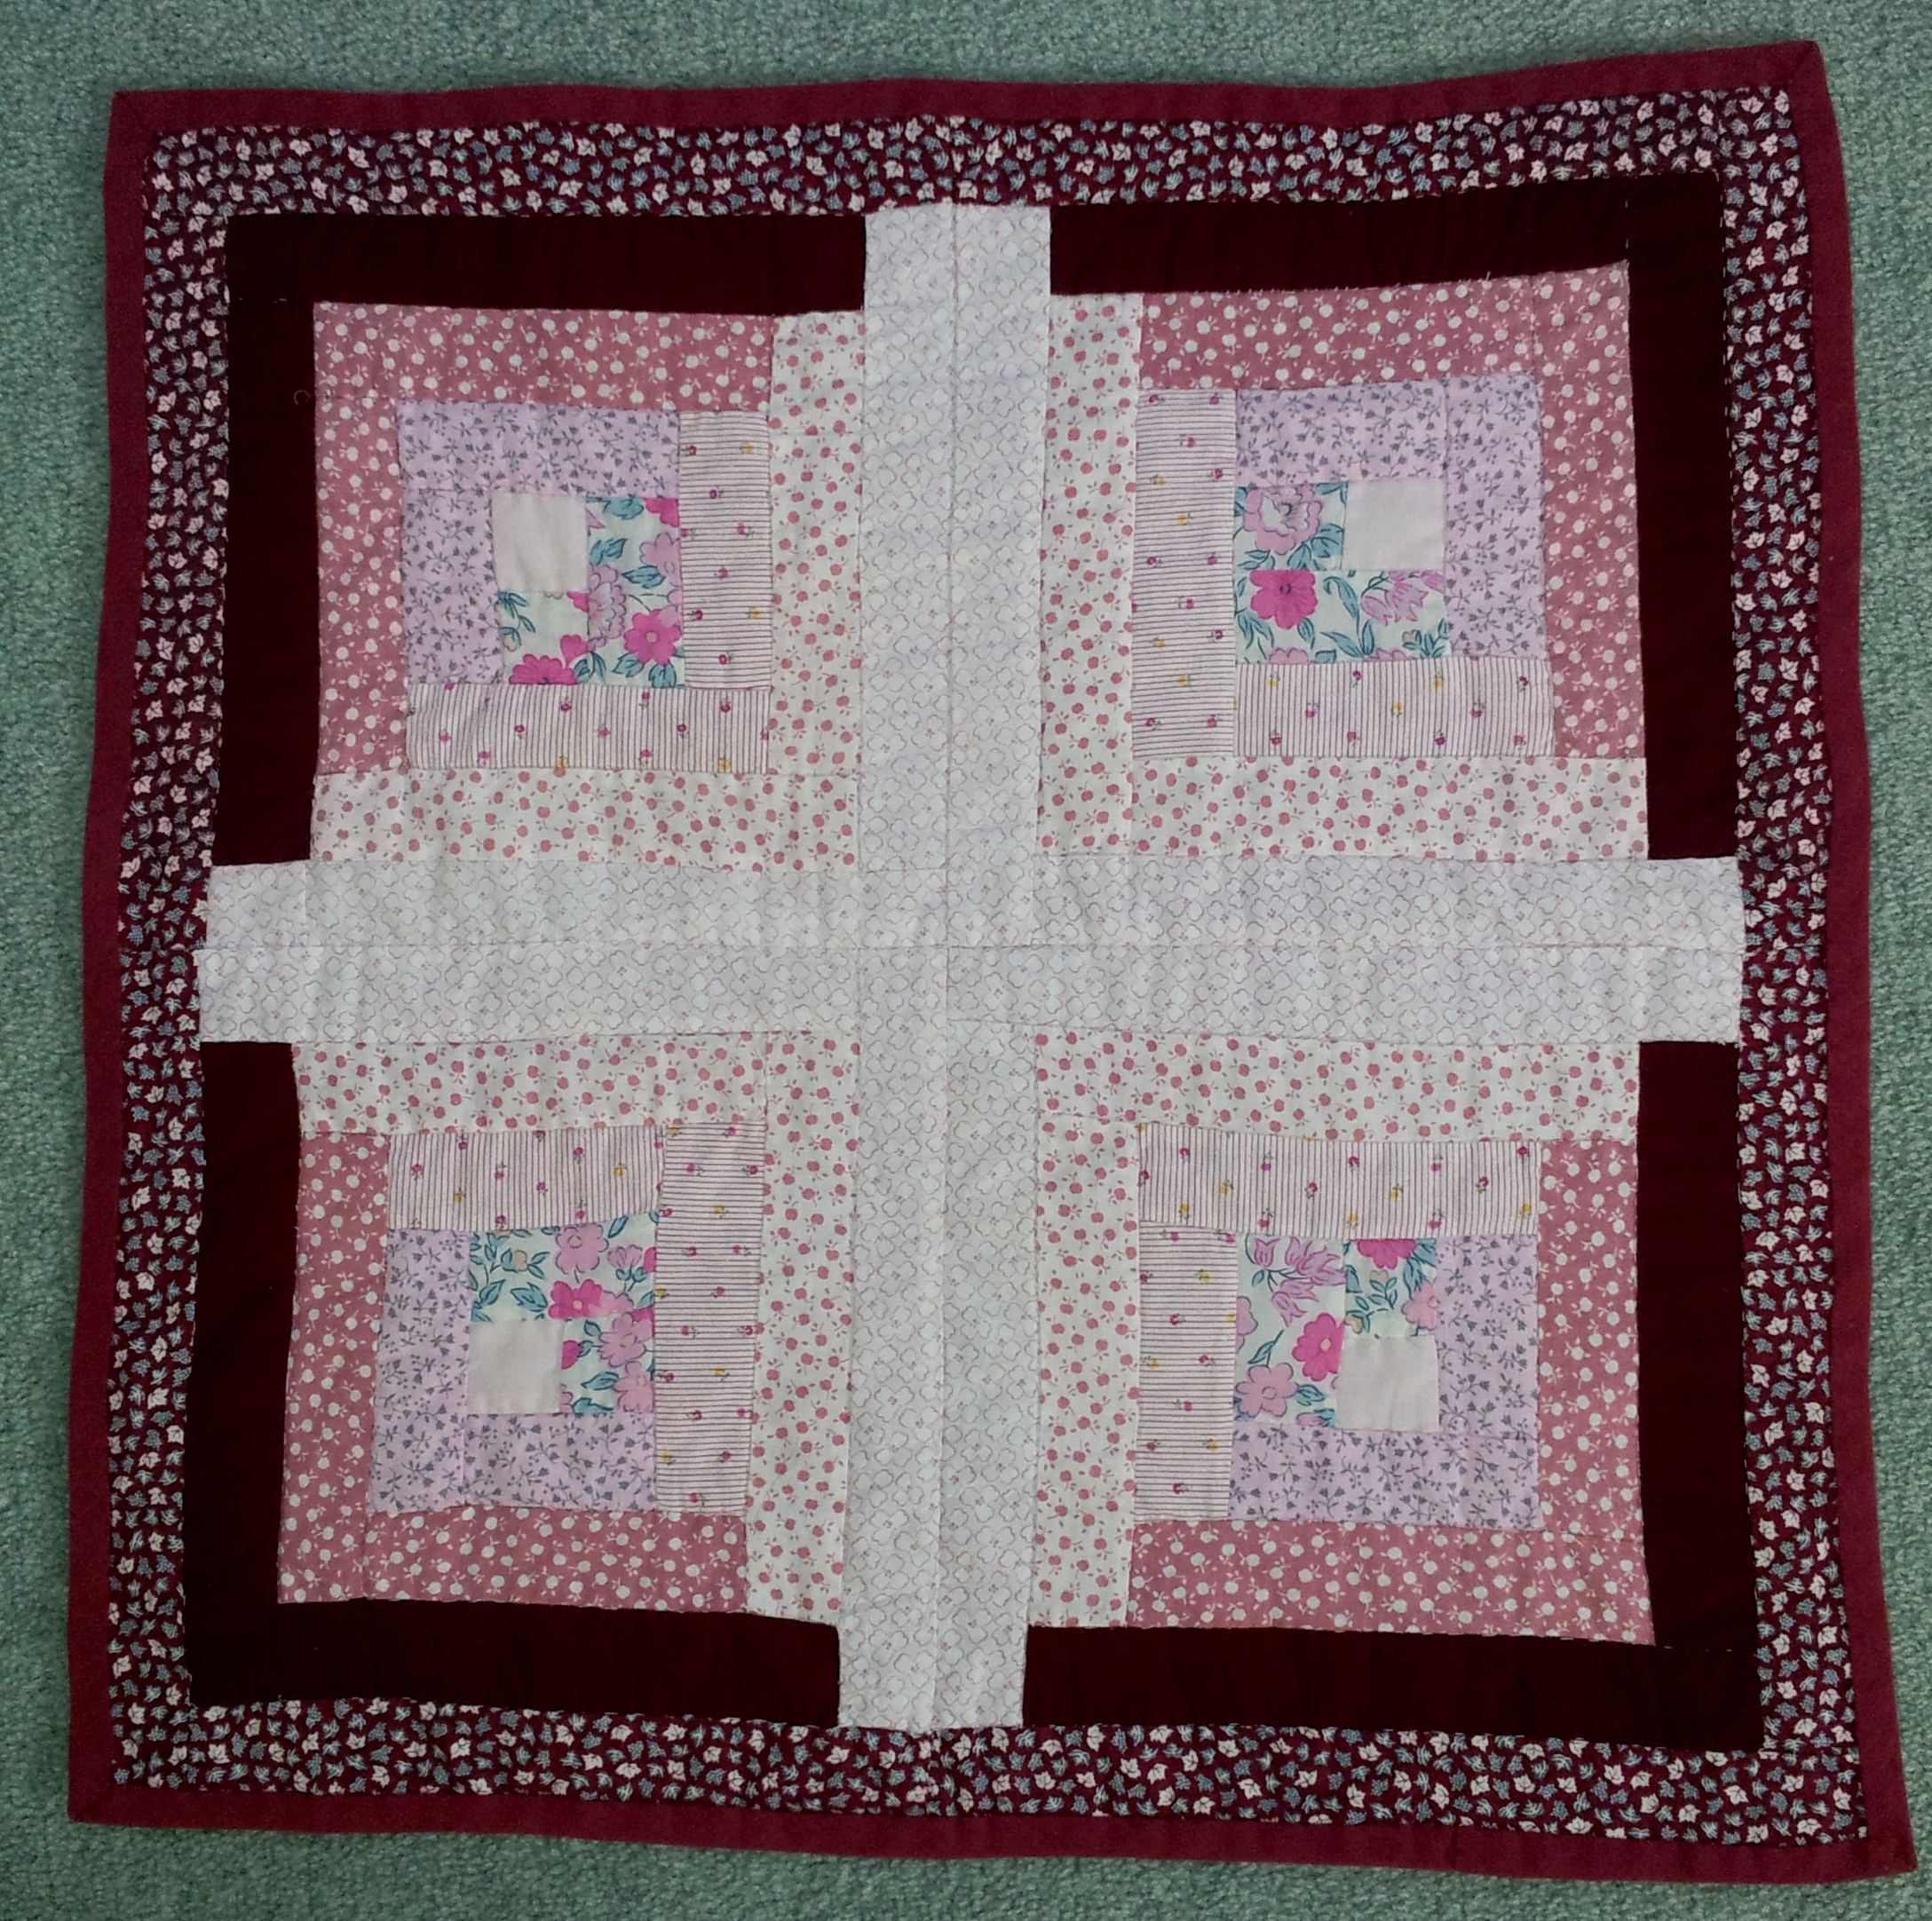 Very Impressive portraiture of  quilt the only piece of patchwork I had attempted was a 'log cabin with #320E14 color and 2176x2164 pixels